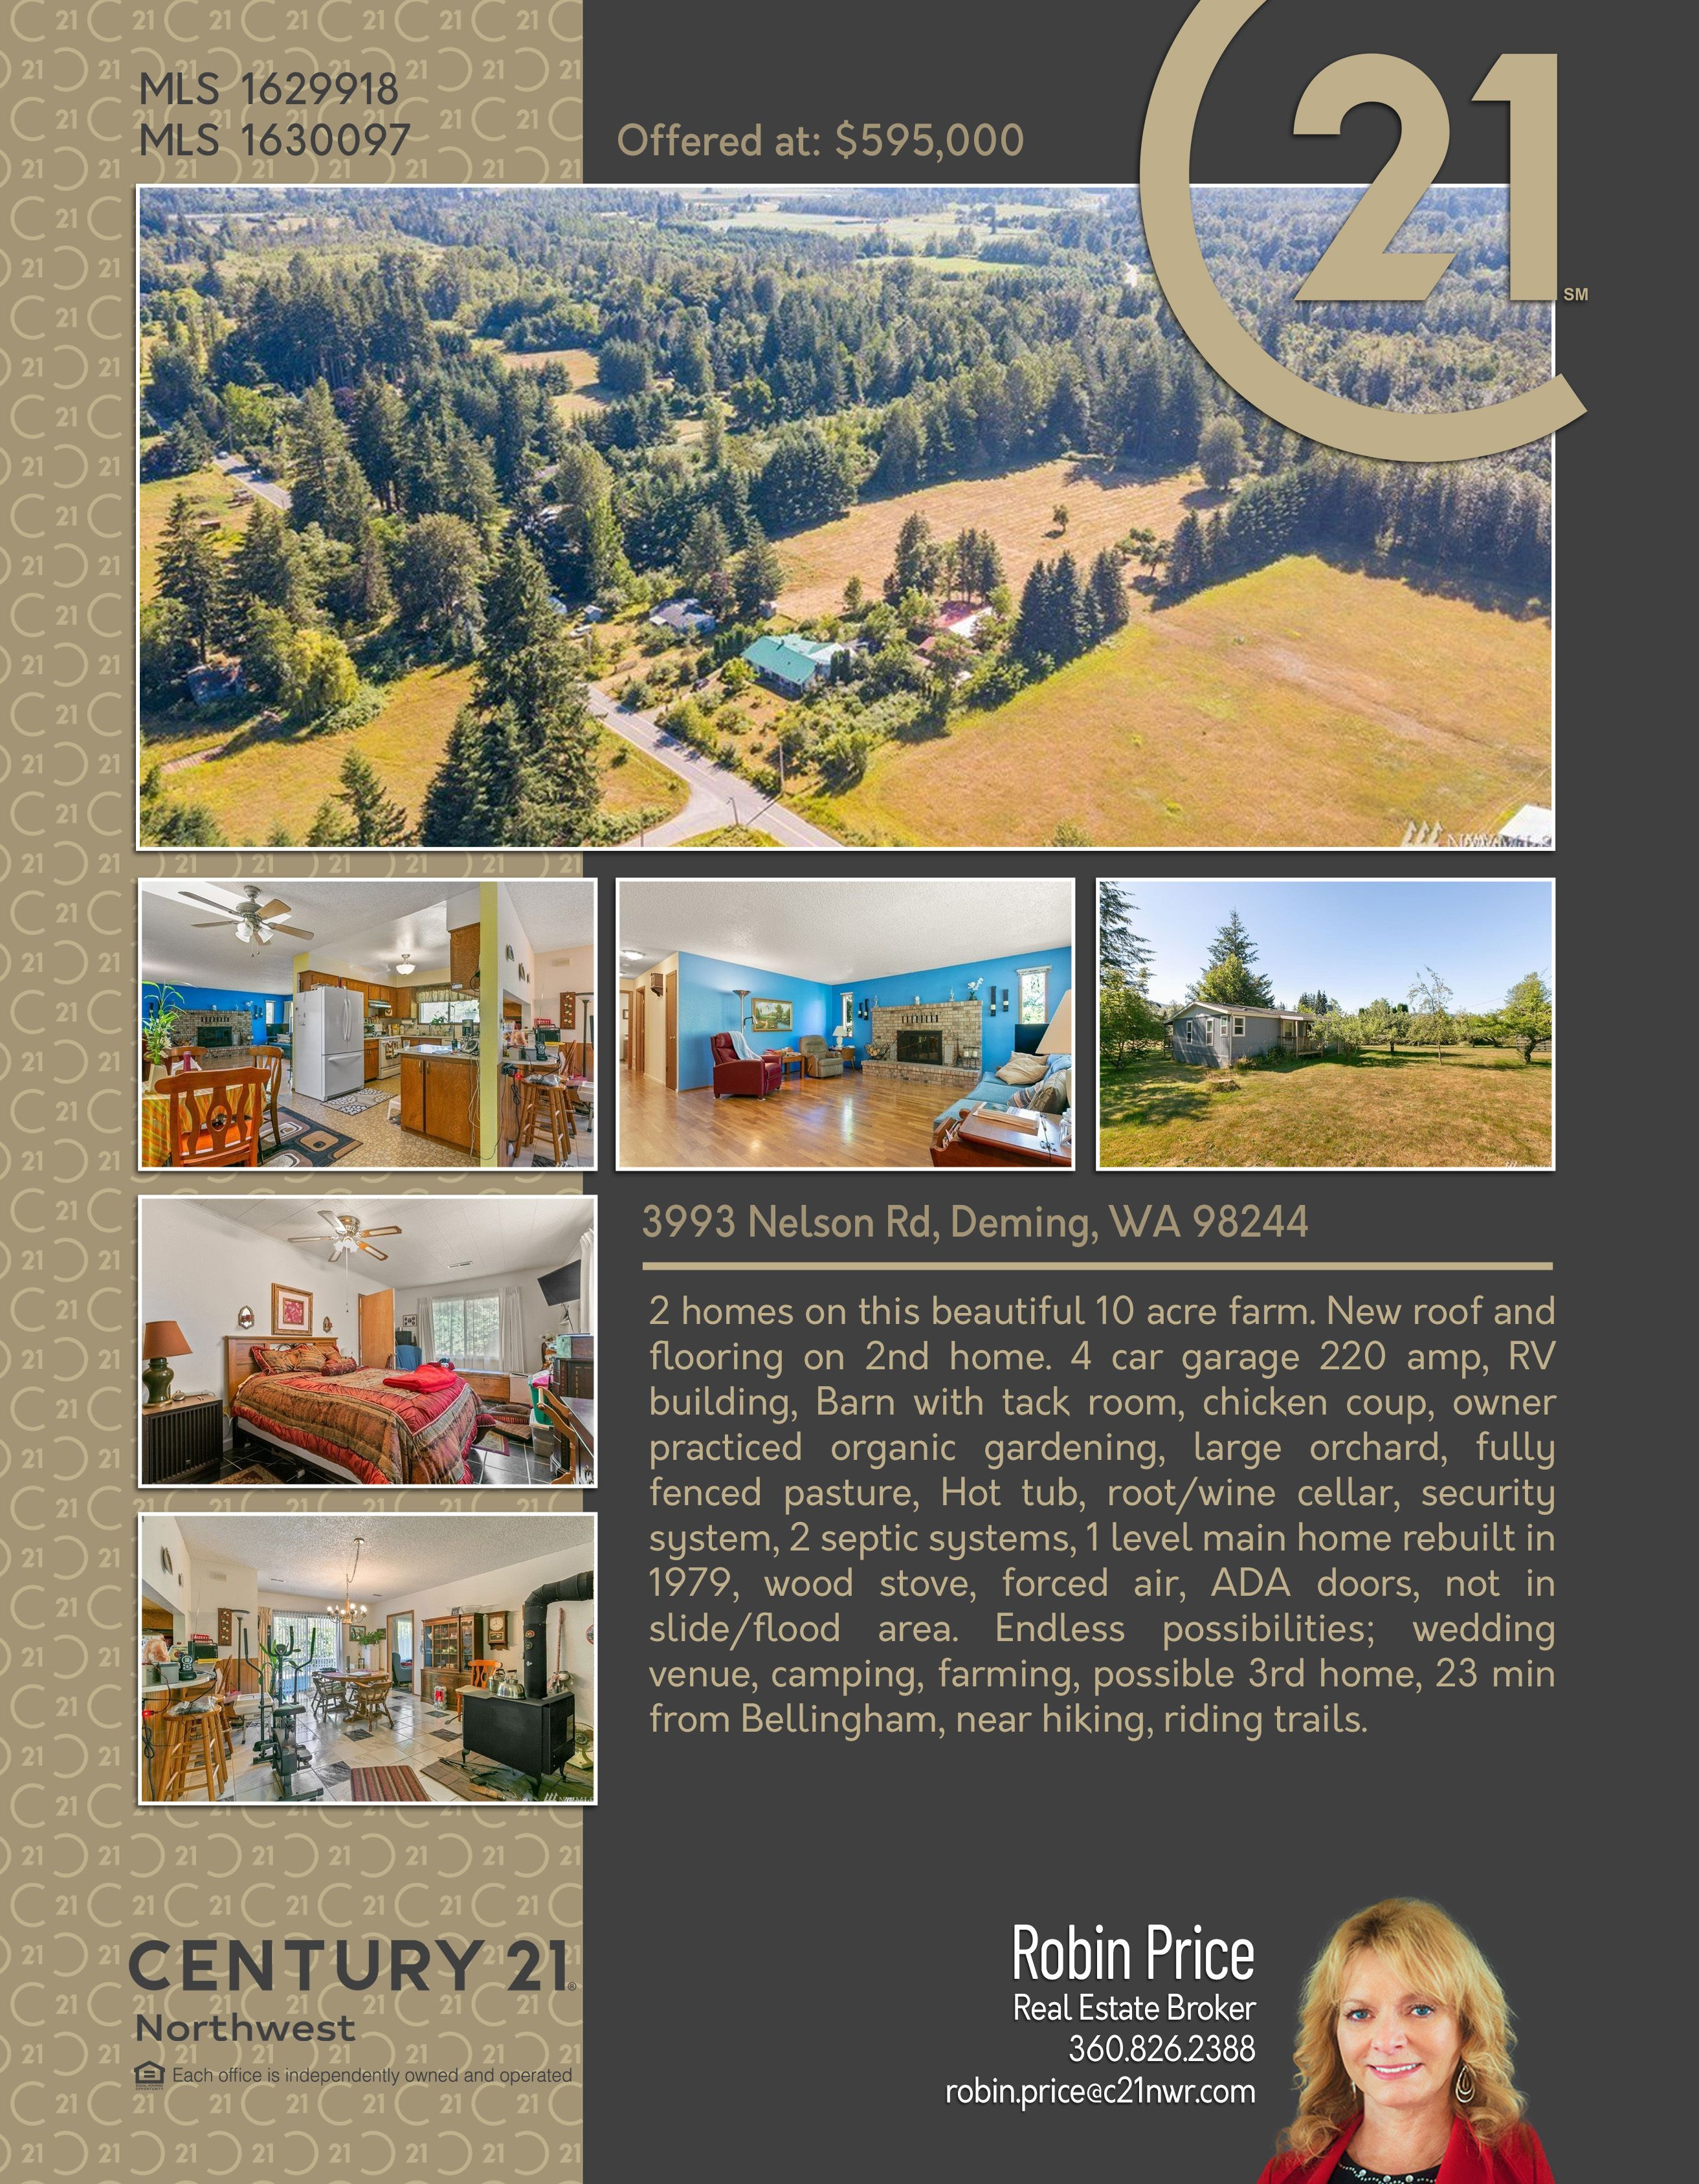 NEWACTIVE 2 homes on this beautiful 10 acre farm. New